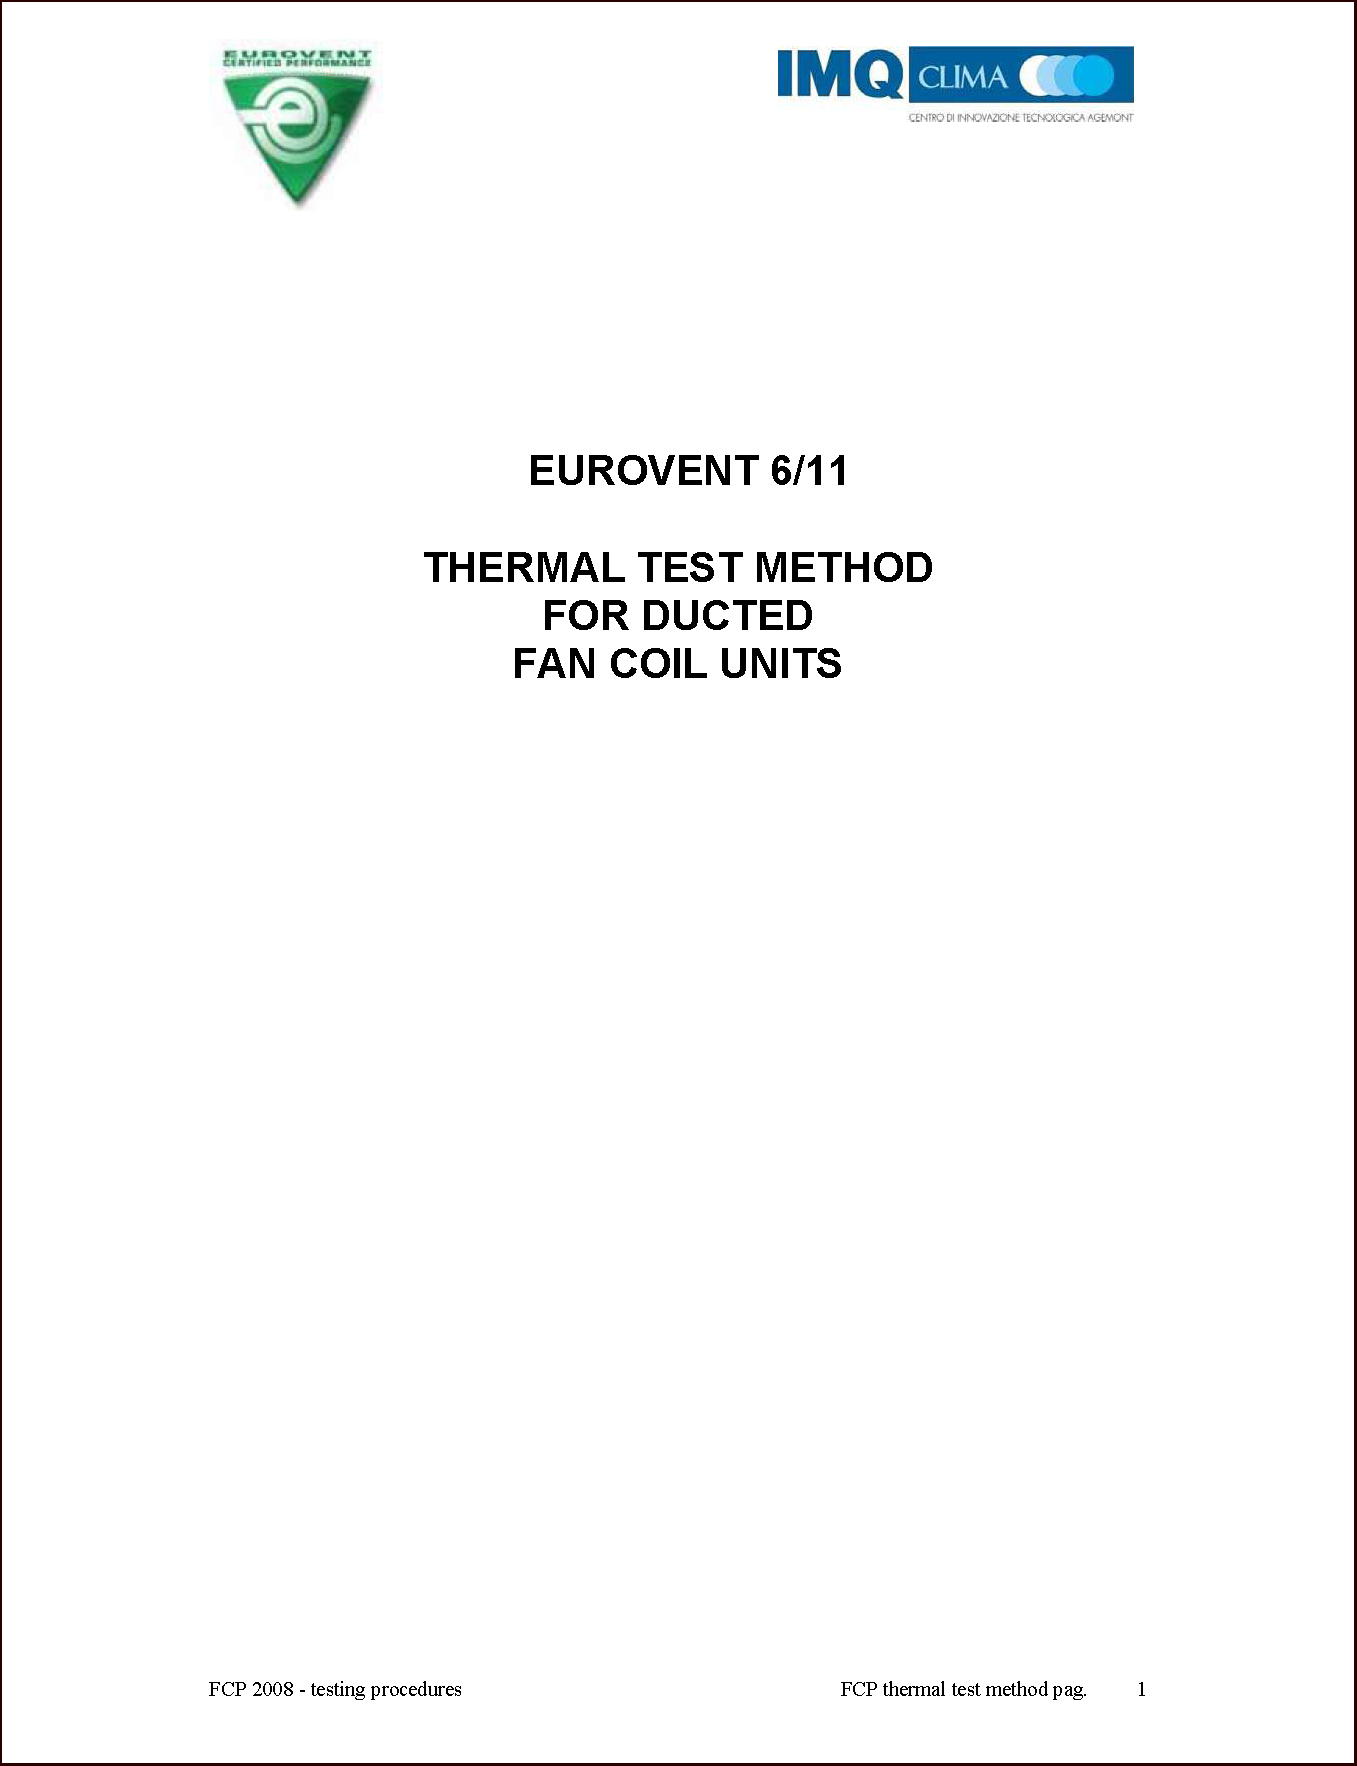 2008 - Thermal test method for ducted fan coil units